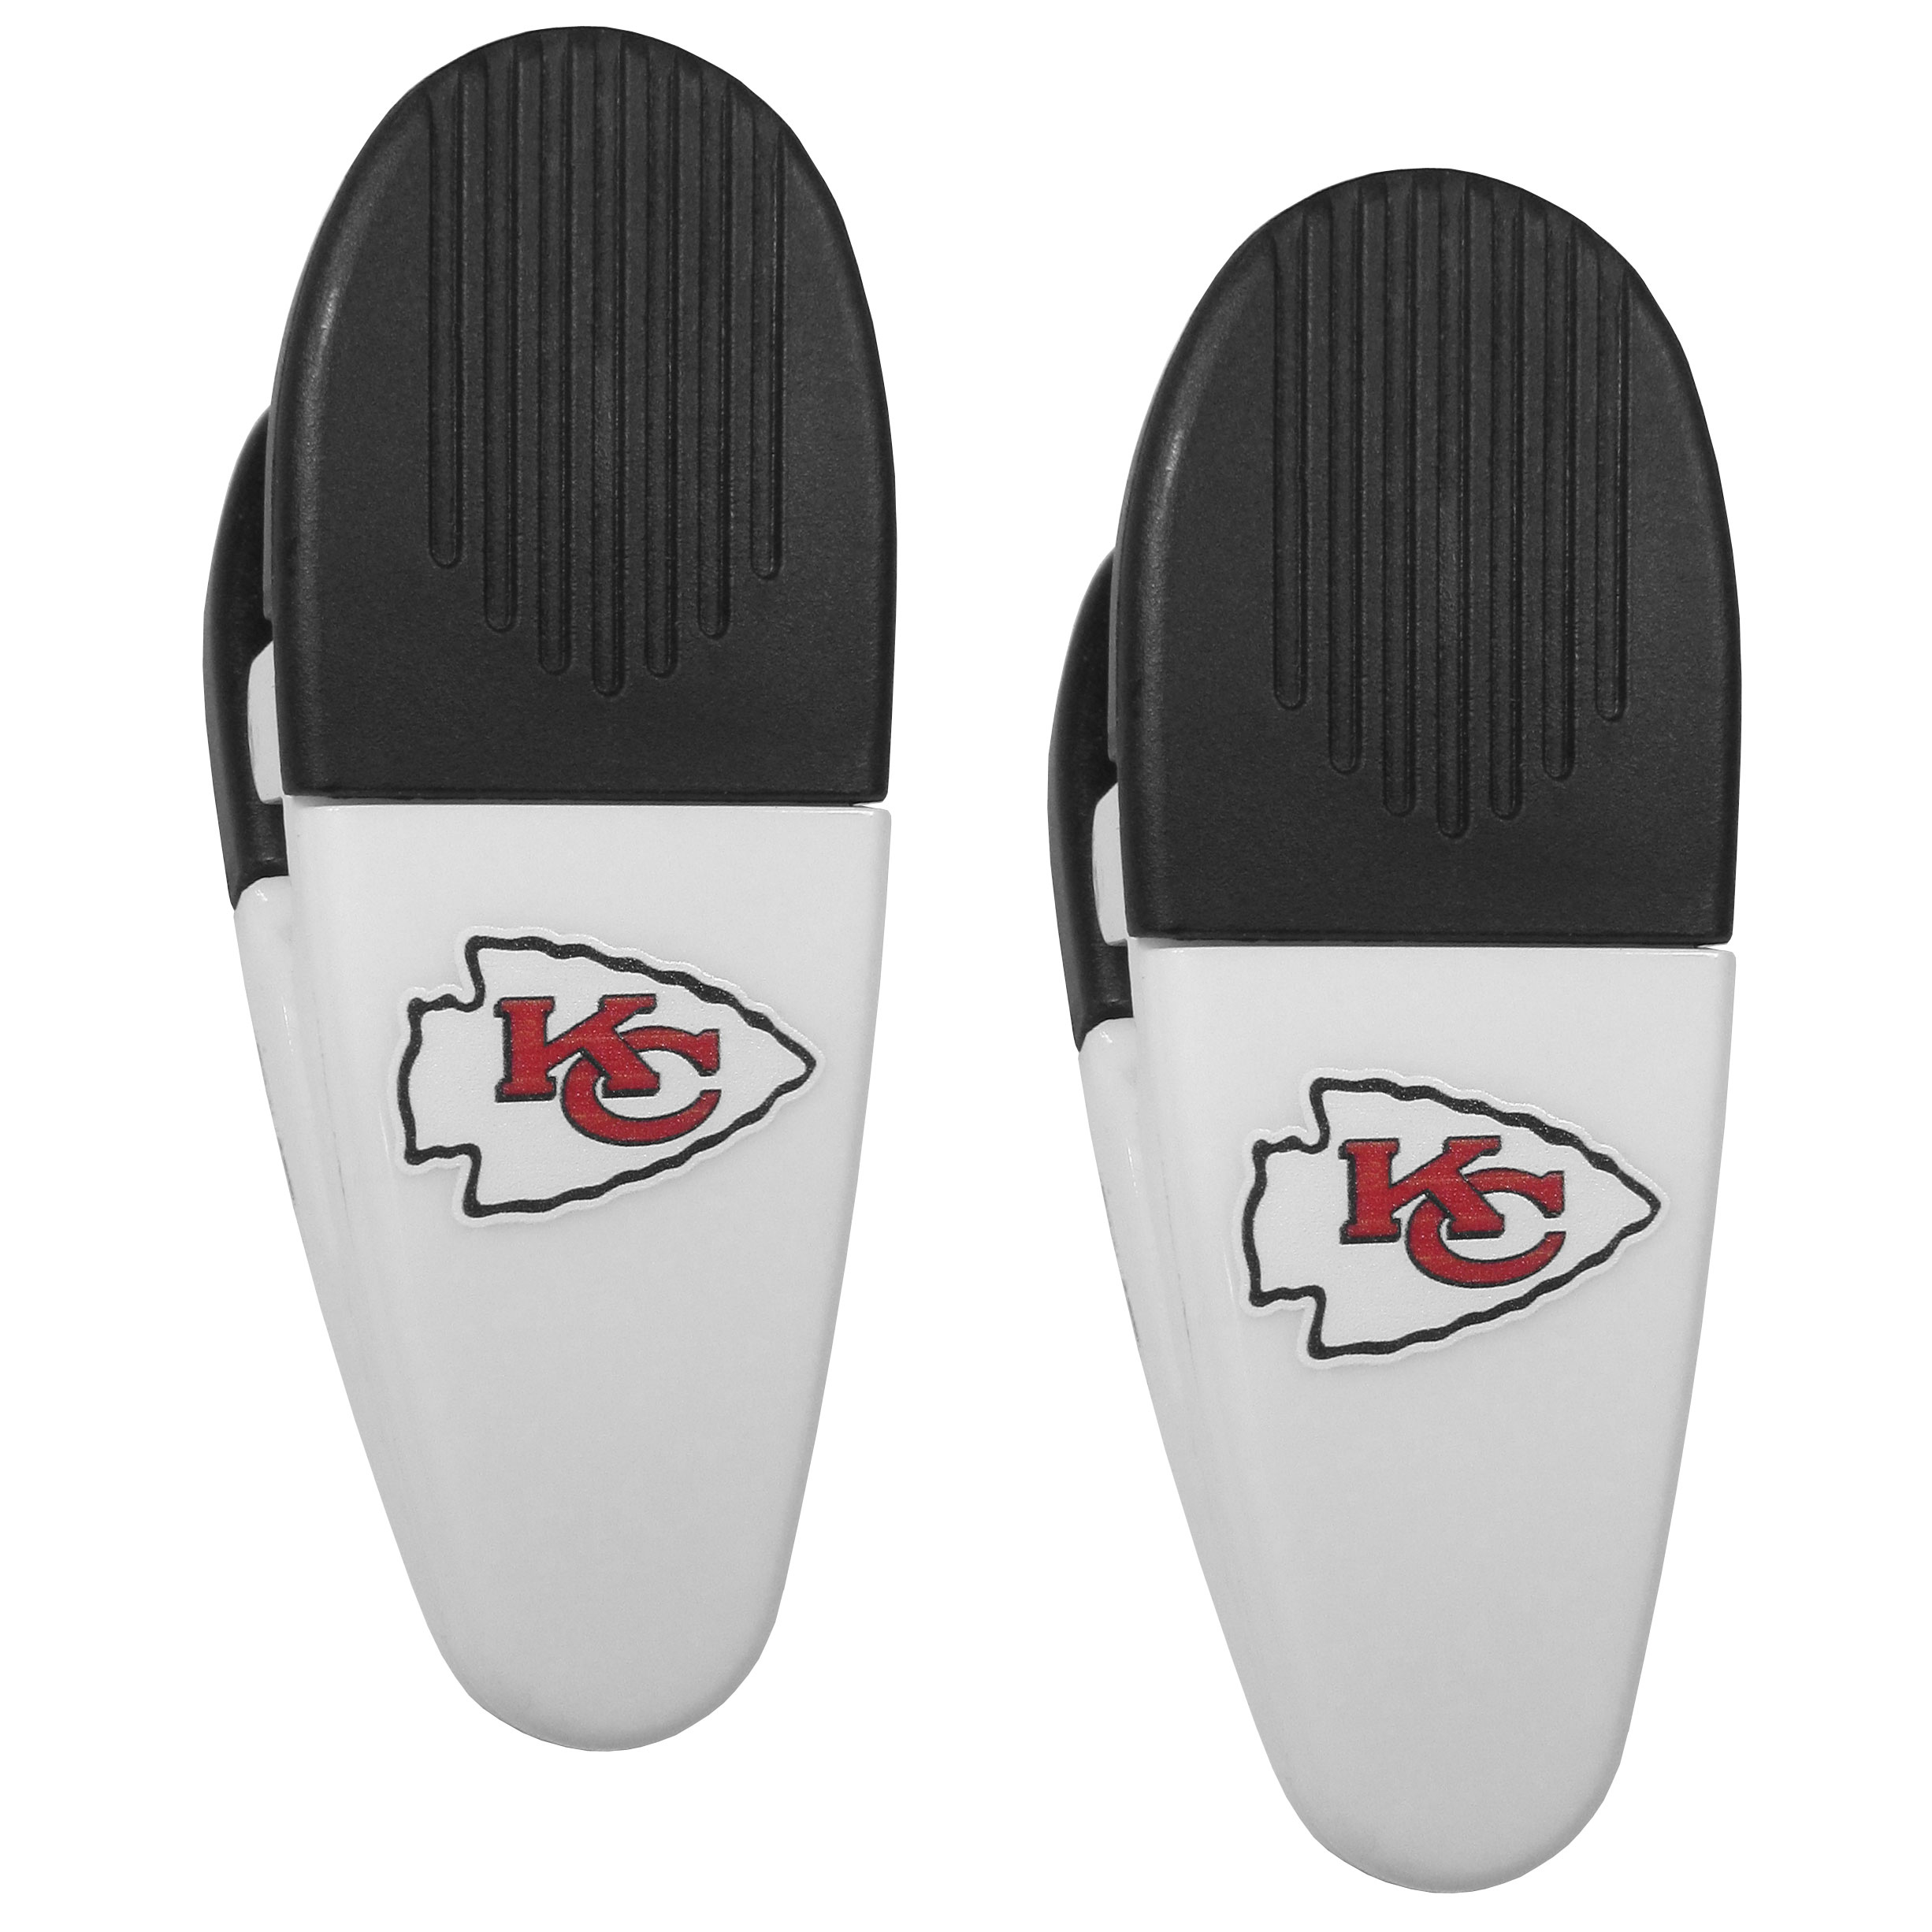 Kansas City Chiefs Mini Chip Clip Magnets, 2 pk - Our Kansas City Chiefs chip clip magnets feature a crisp team logo on the front of the clip. The clip is perfect for sealing chips for freshness and with the powerful magnet on the back it can be used to attach notes to the fridge or hanging your child's artwork. Set of 2 magnet clips, each clip is 3.5 inches tall and 1.25 inch wide.